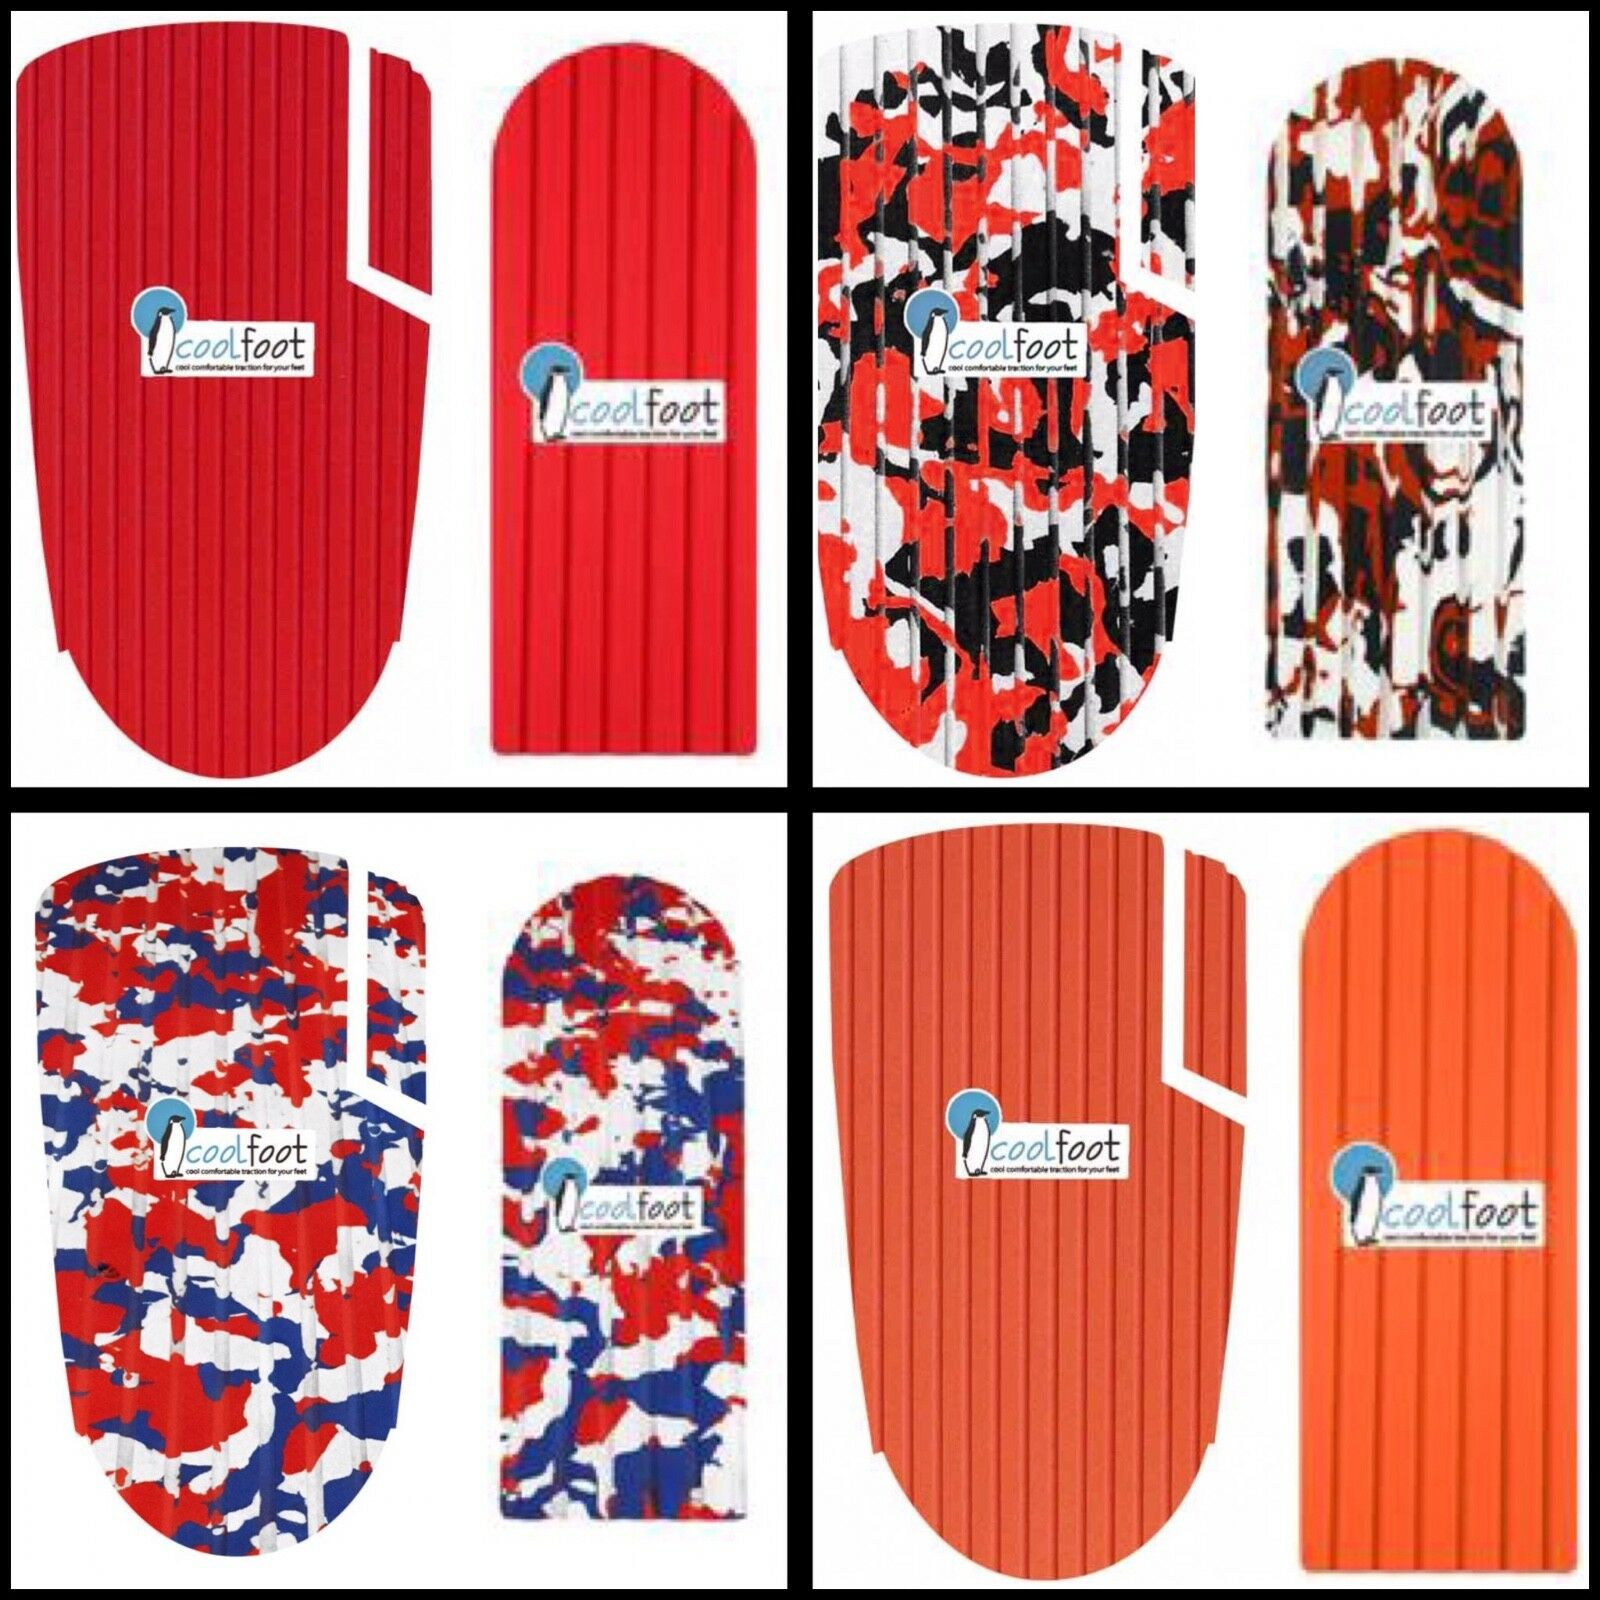 Motorguide X-3, X-5, X-i5 coolfoot   Hotpad combo  - 16 colors  shop online today